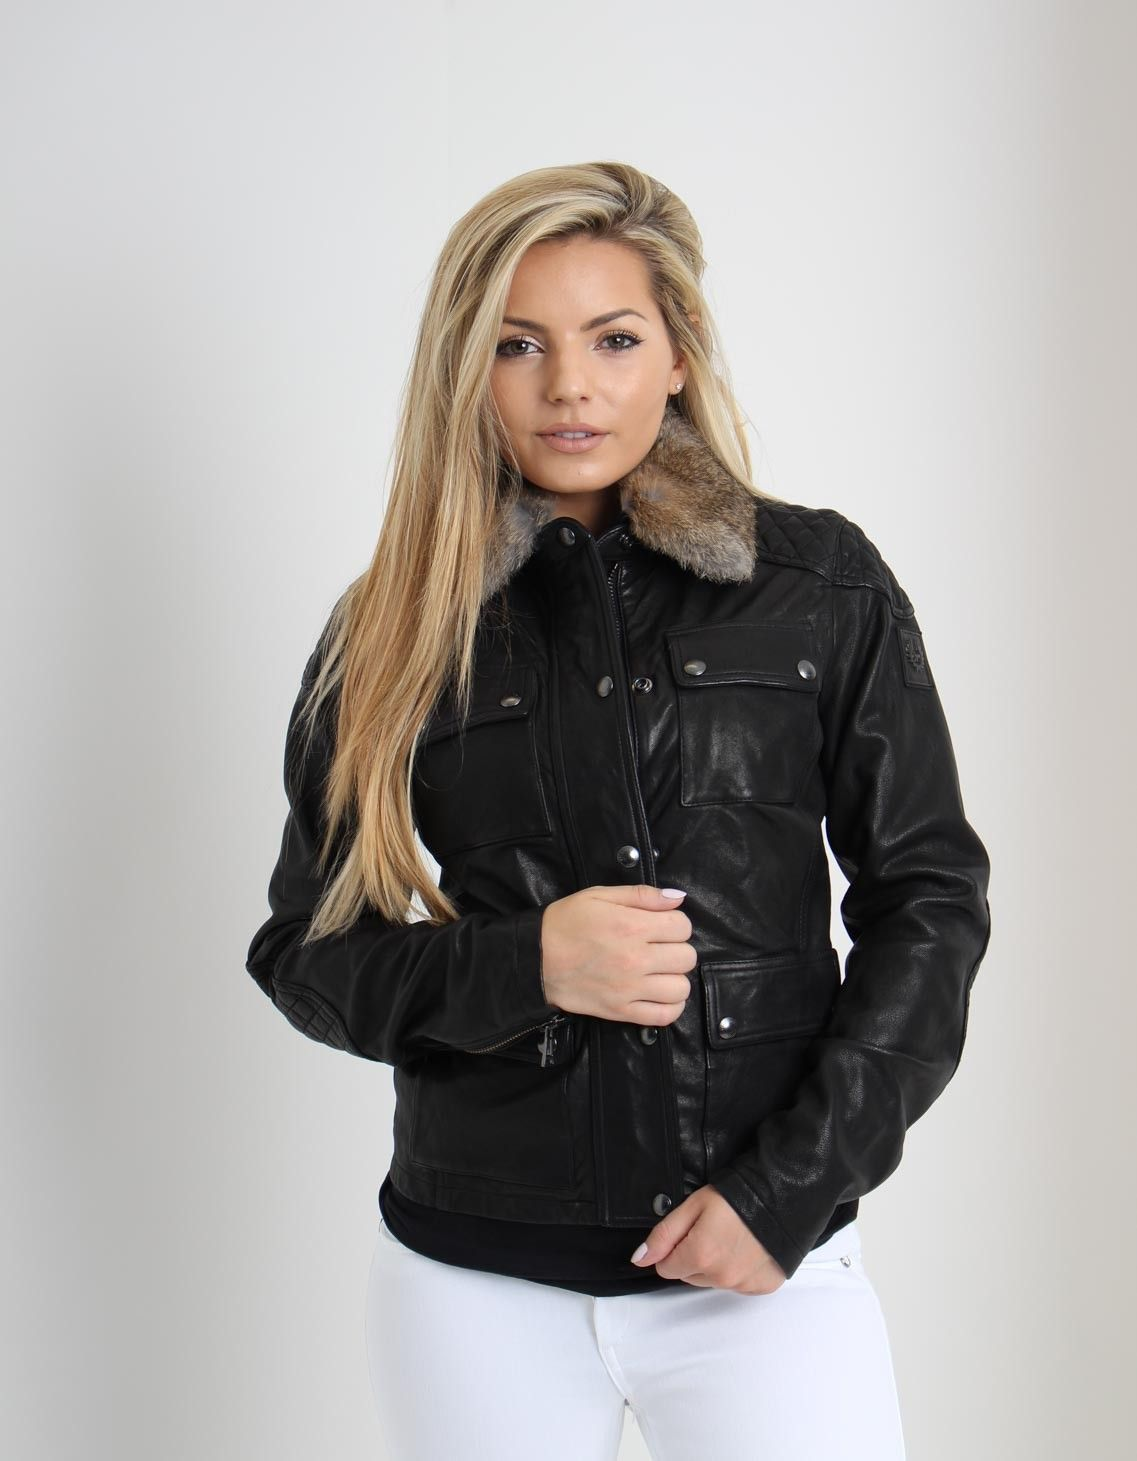 Belstaff Attebury Black Leather Jacket   Accent Clothing